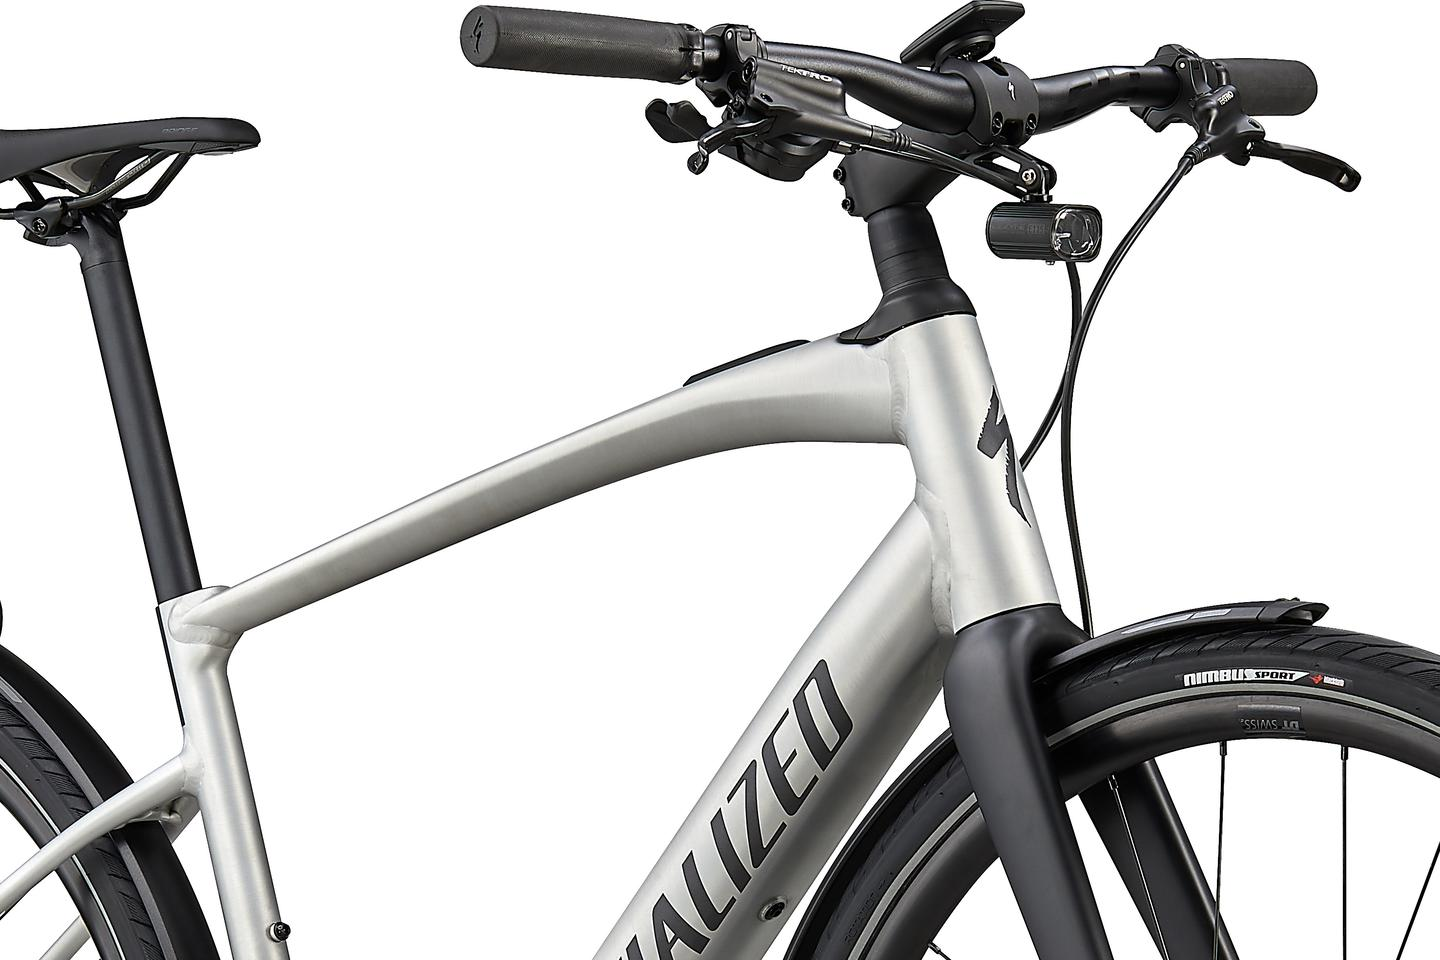 The Turbo Vado SL 5.0 ebike features Future Shock suspension for smoothing out the bumps